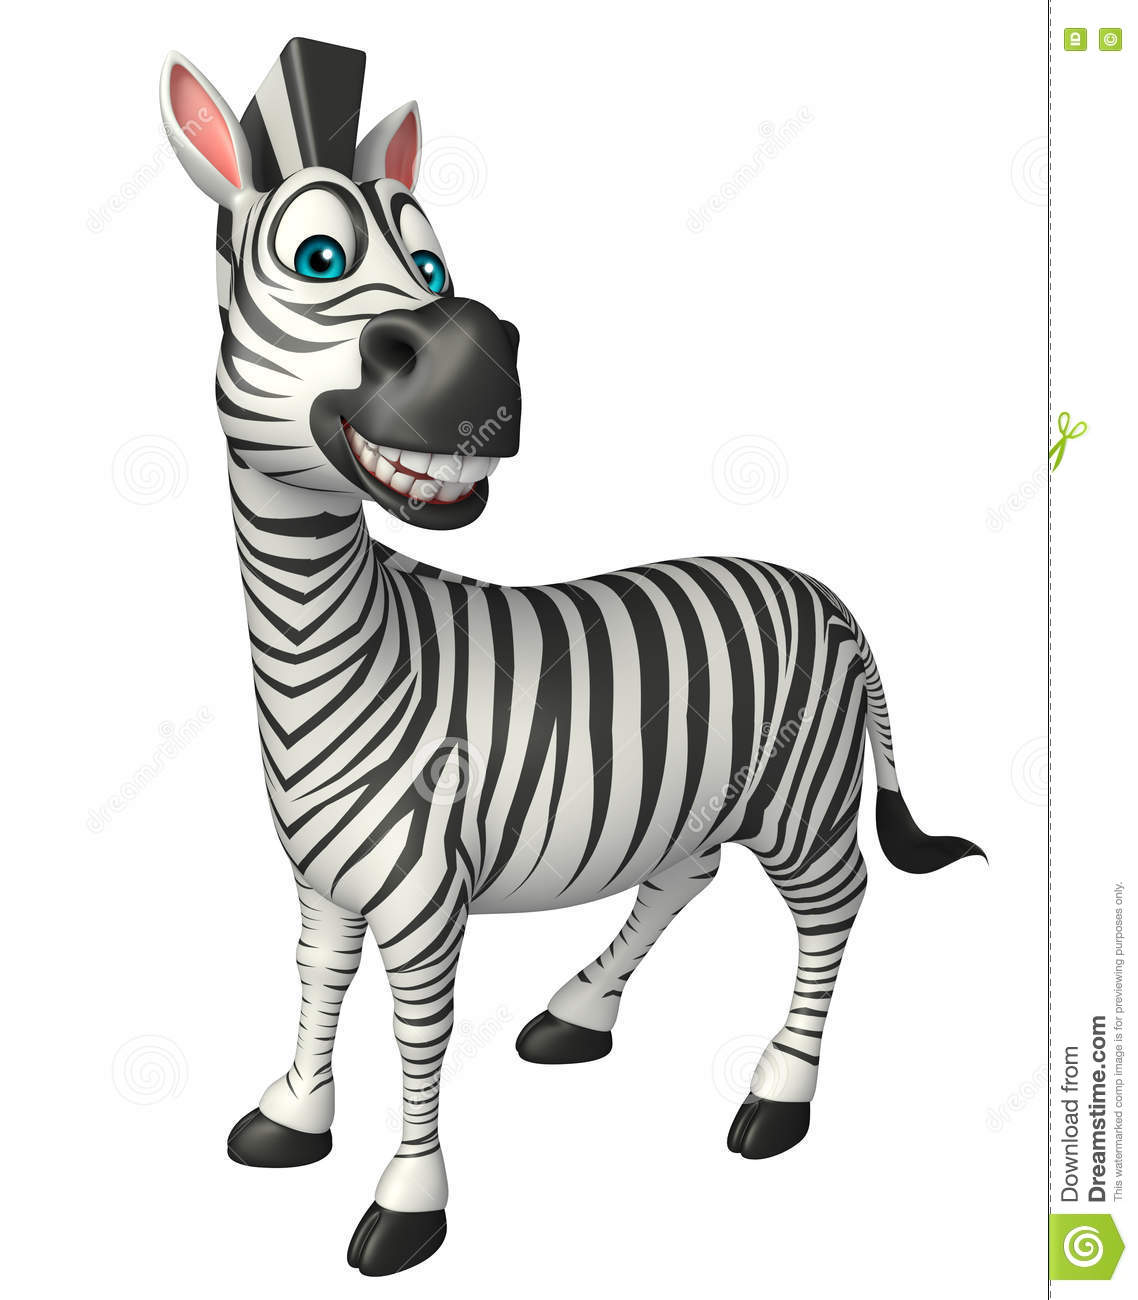 Funny Zebra Cartoon Character Stock Illustration - Image ...